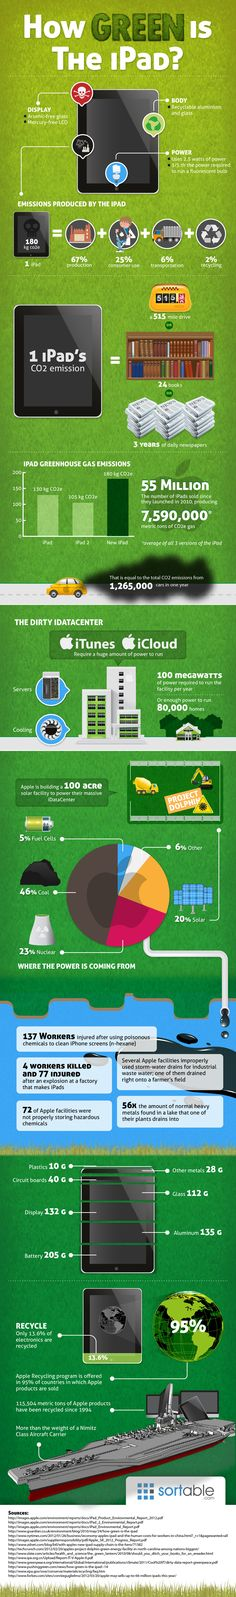 How Green Is Your iPad? #infographic #ipad #socialmedia #in